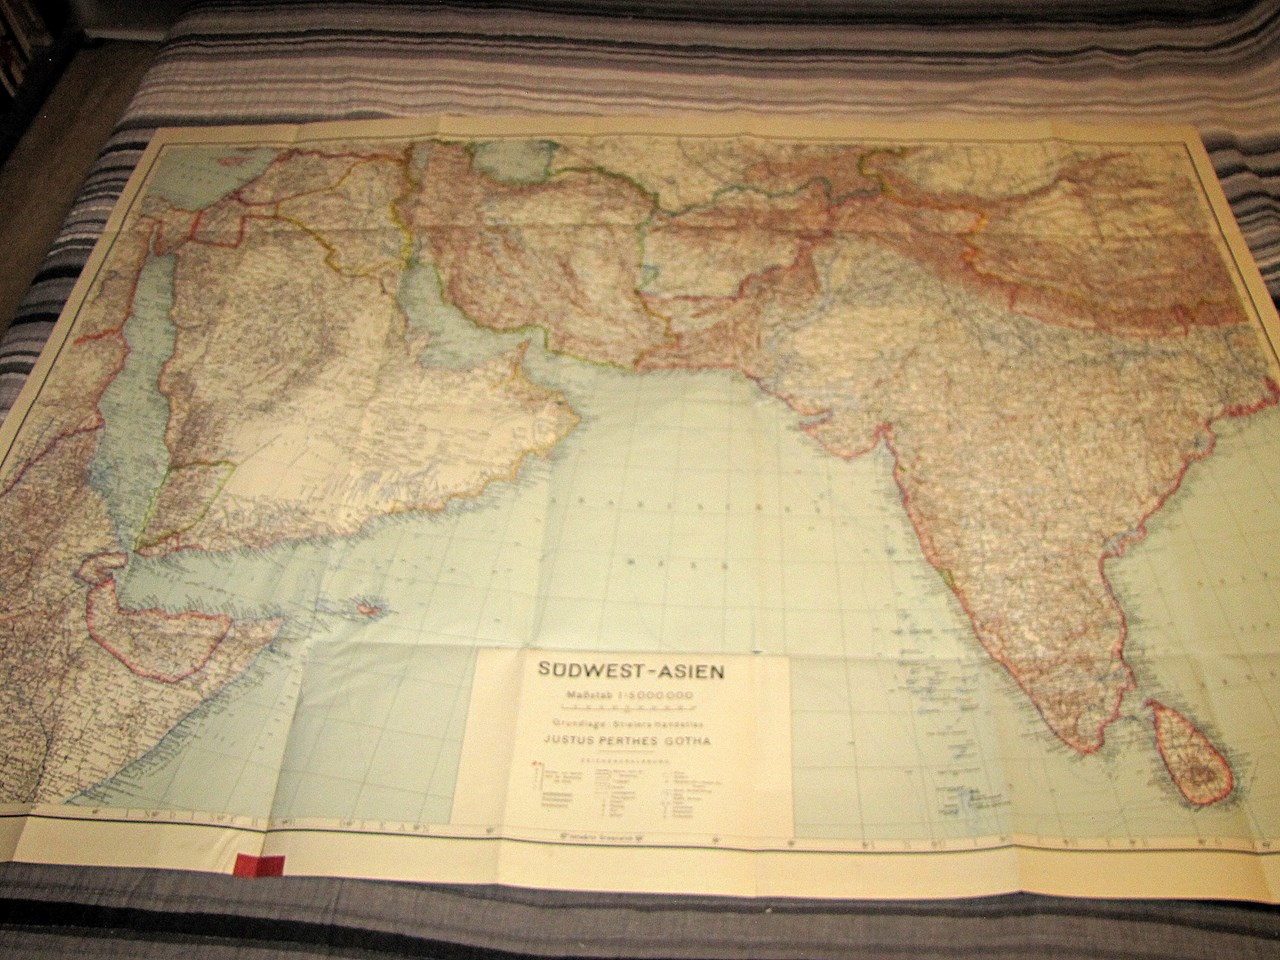 WWII GERMAN MAP OF SOUTHWEST ASIA (1942)